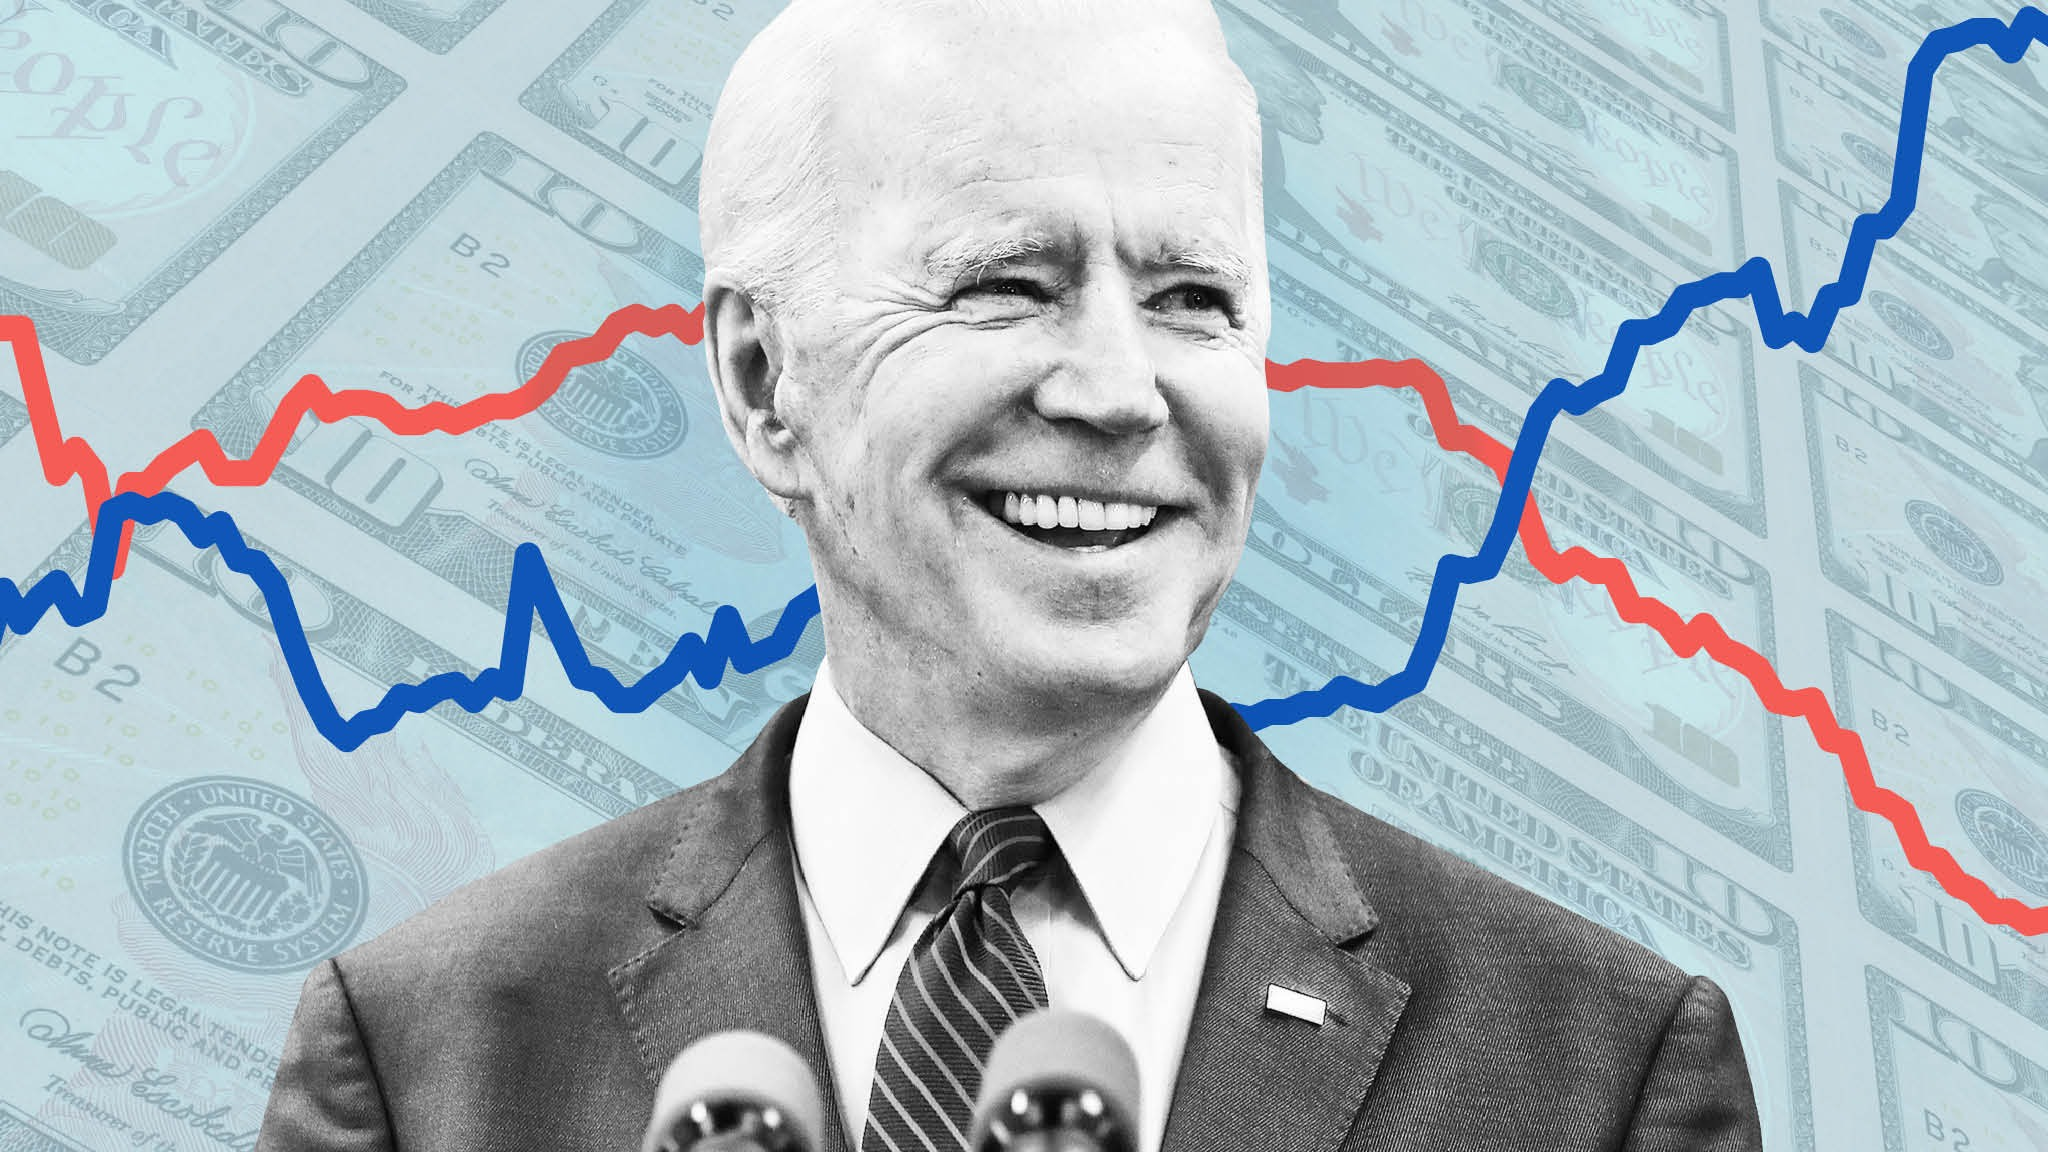 Some analysts believe that if Joe Biden wins the election, as current polling indicates, taxes and regulation could increase